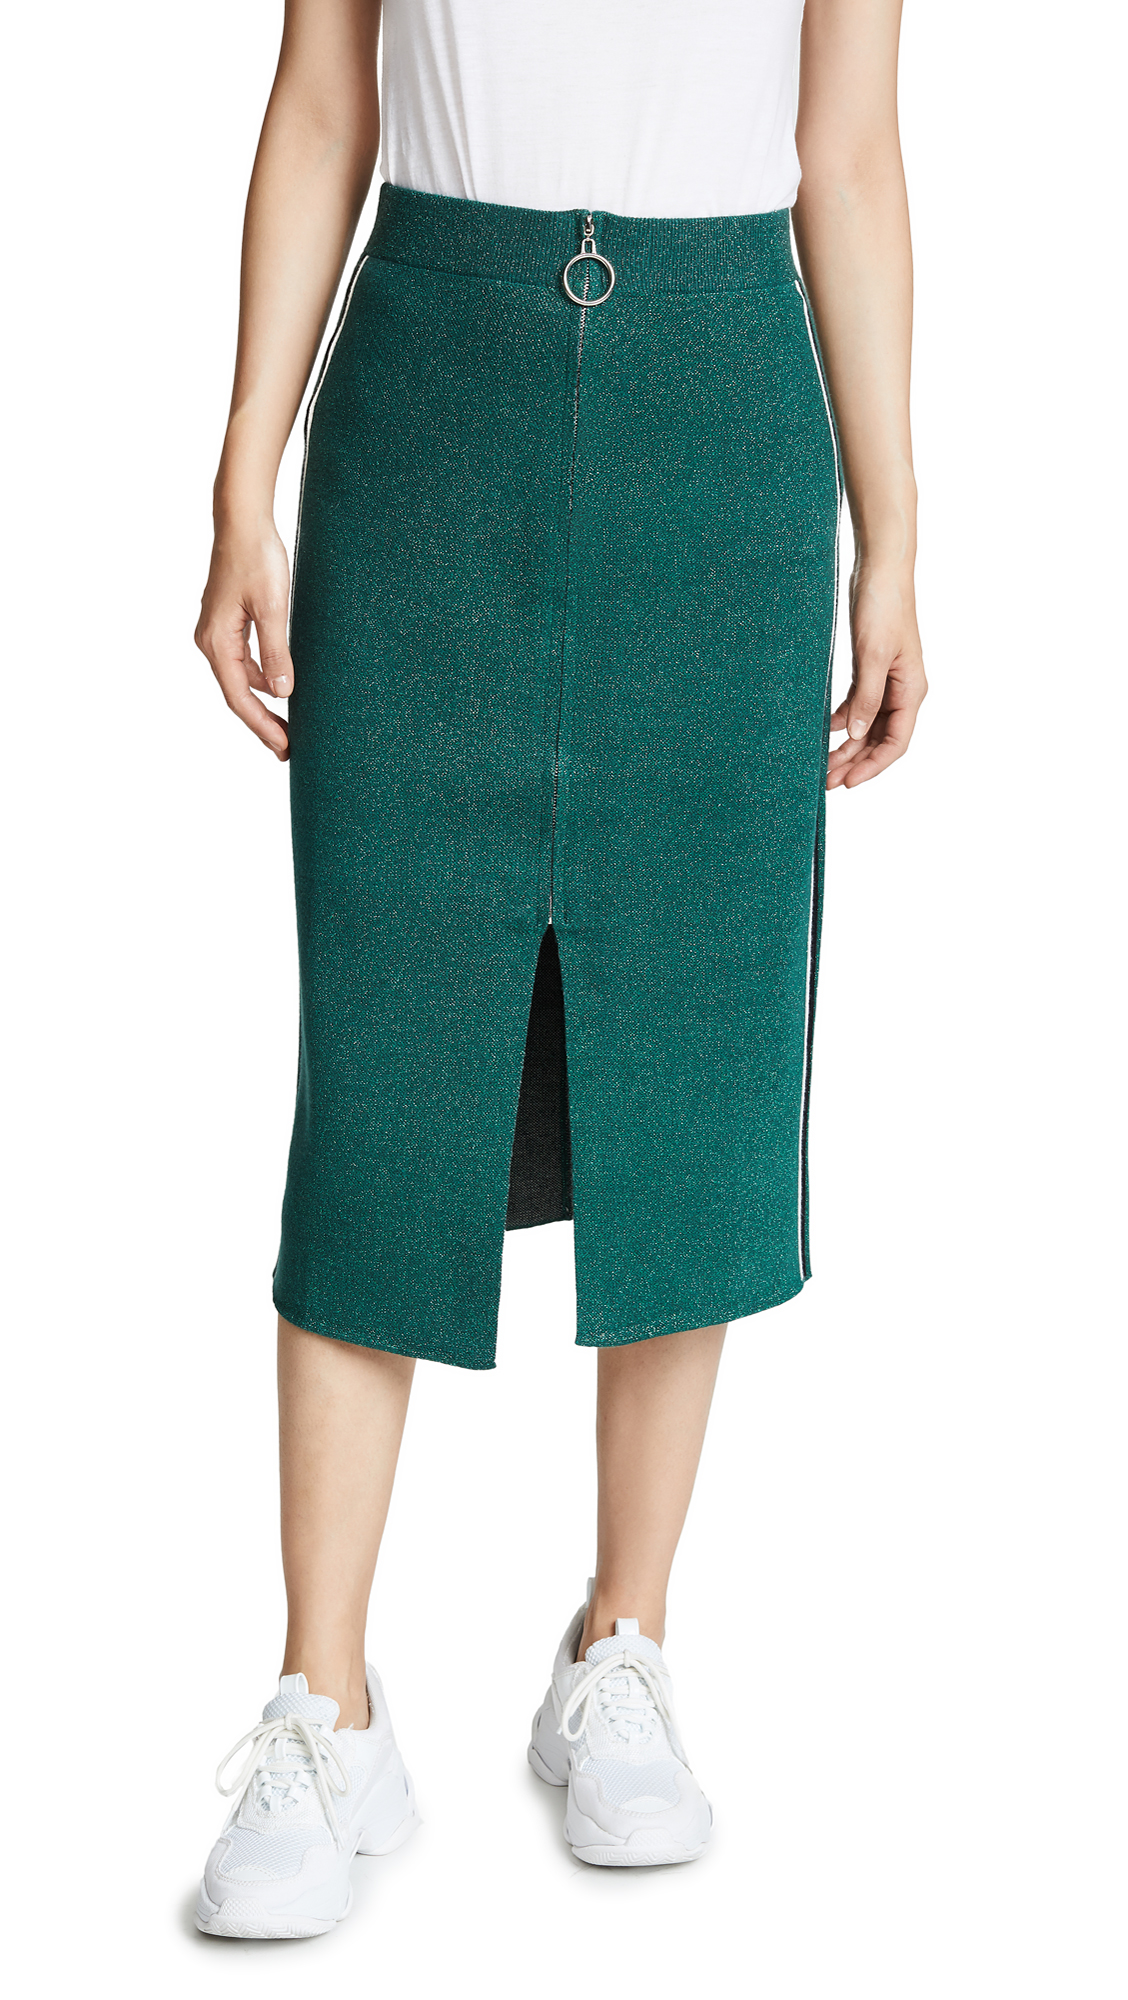 Suncoo Florence Skirt In Green